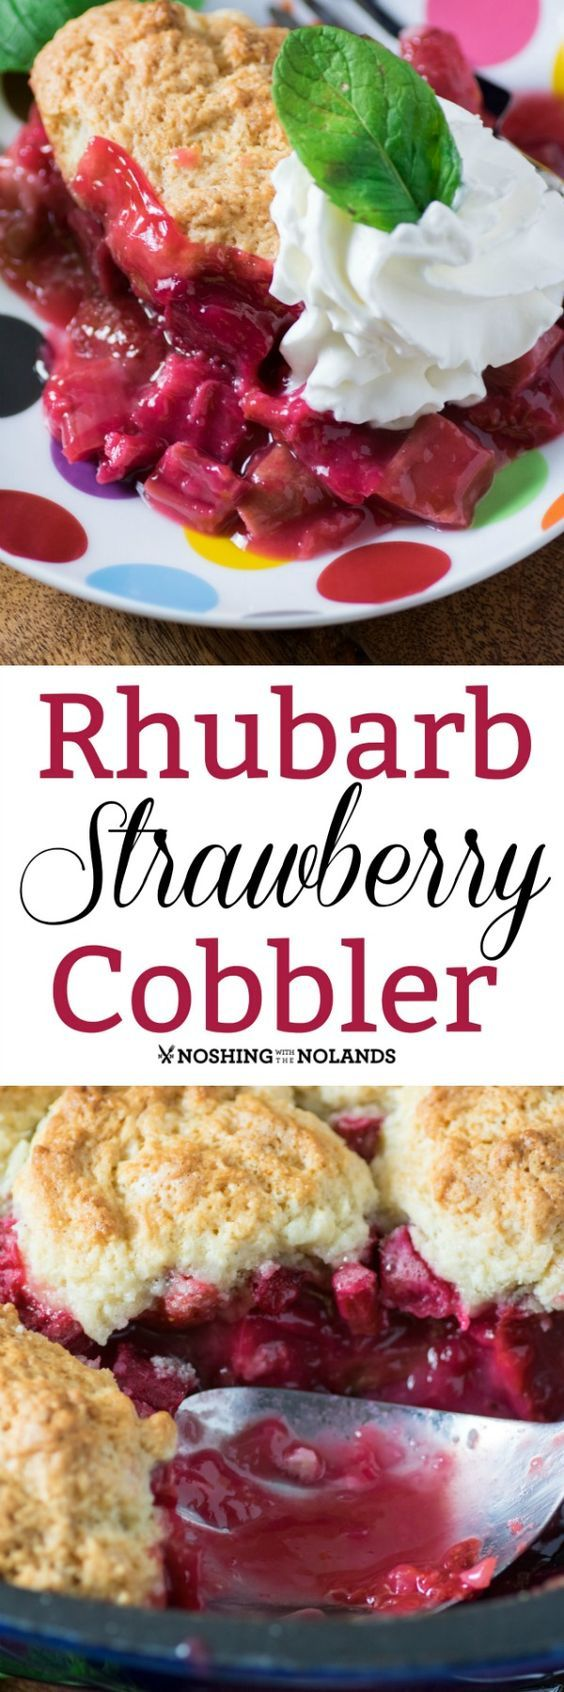 Rhubarb Strawberry Cobbler by Noshing With The Nolands is a gorgeous dessert that is simply bursting with fresh flavor!